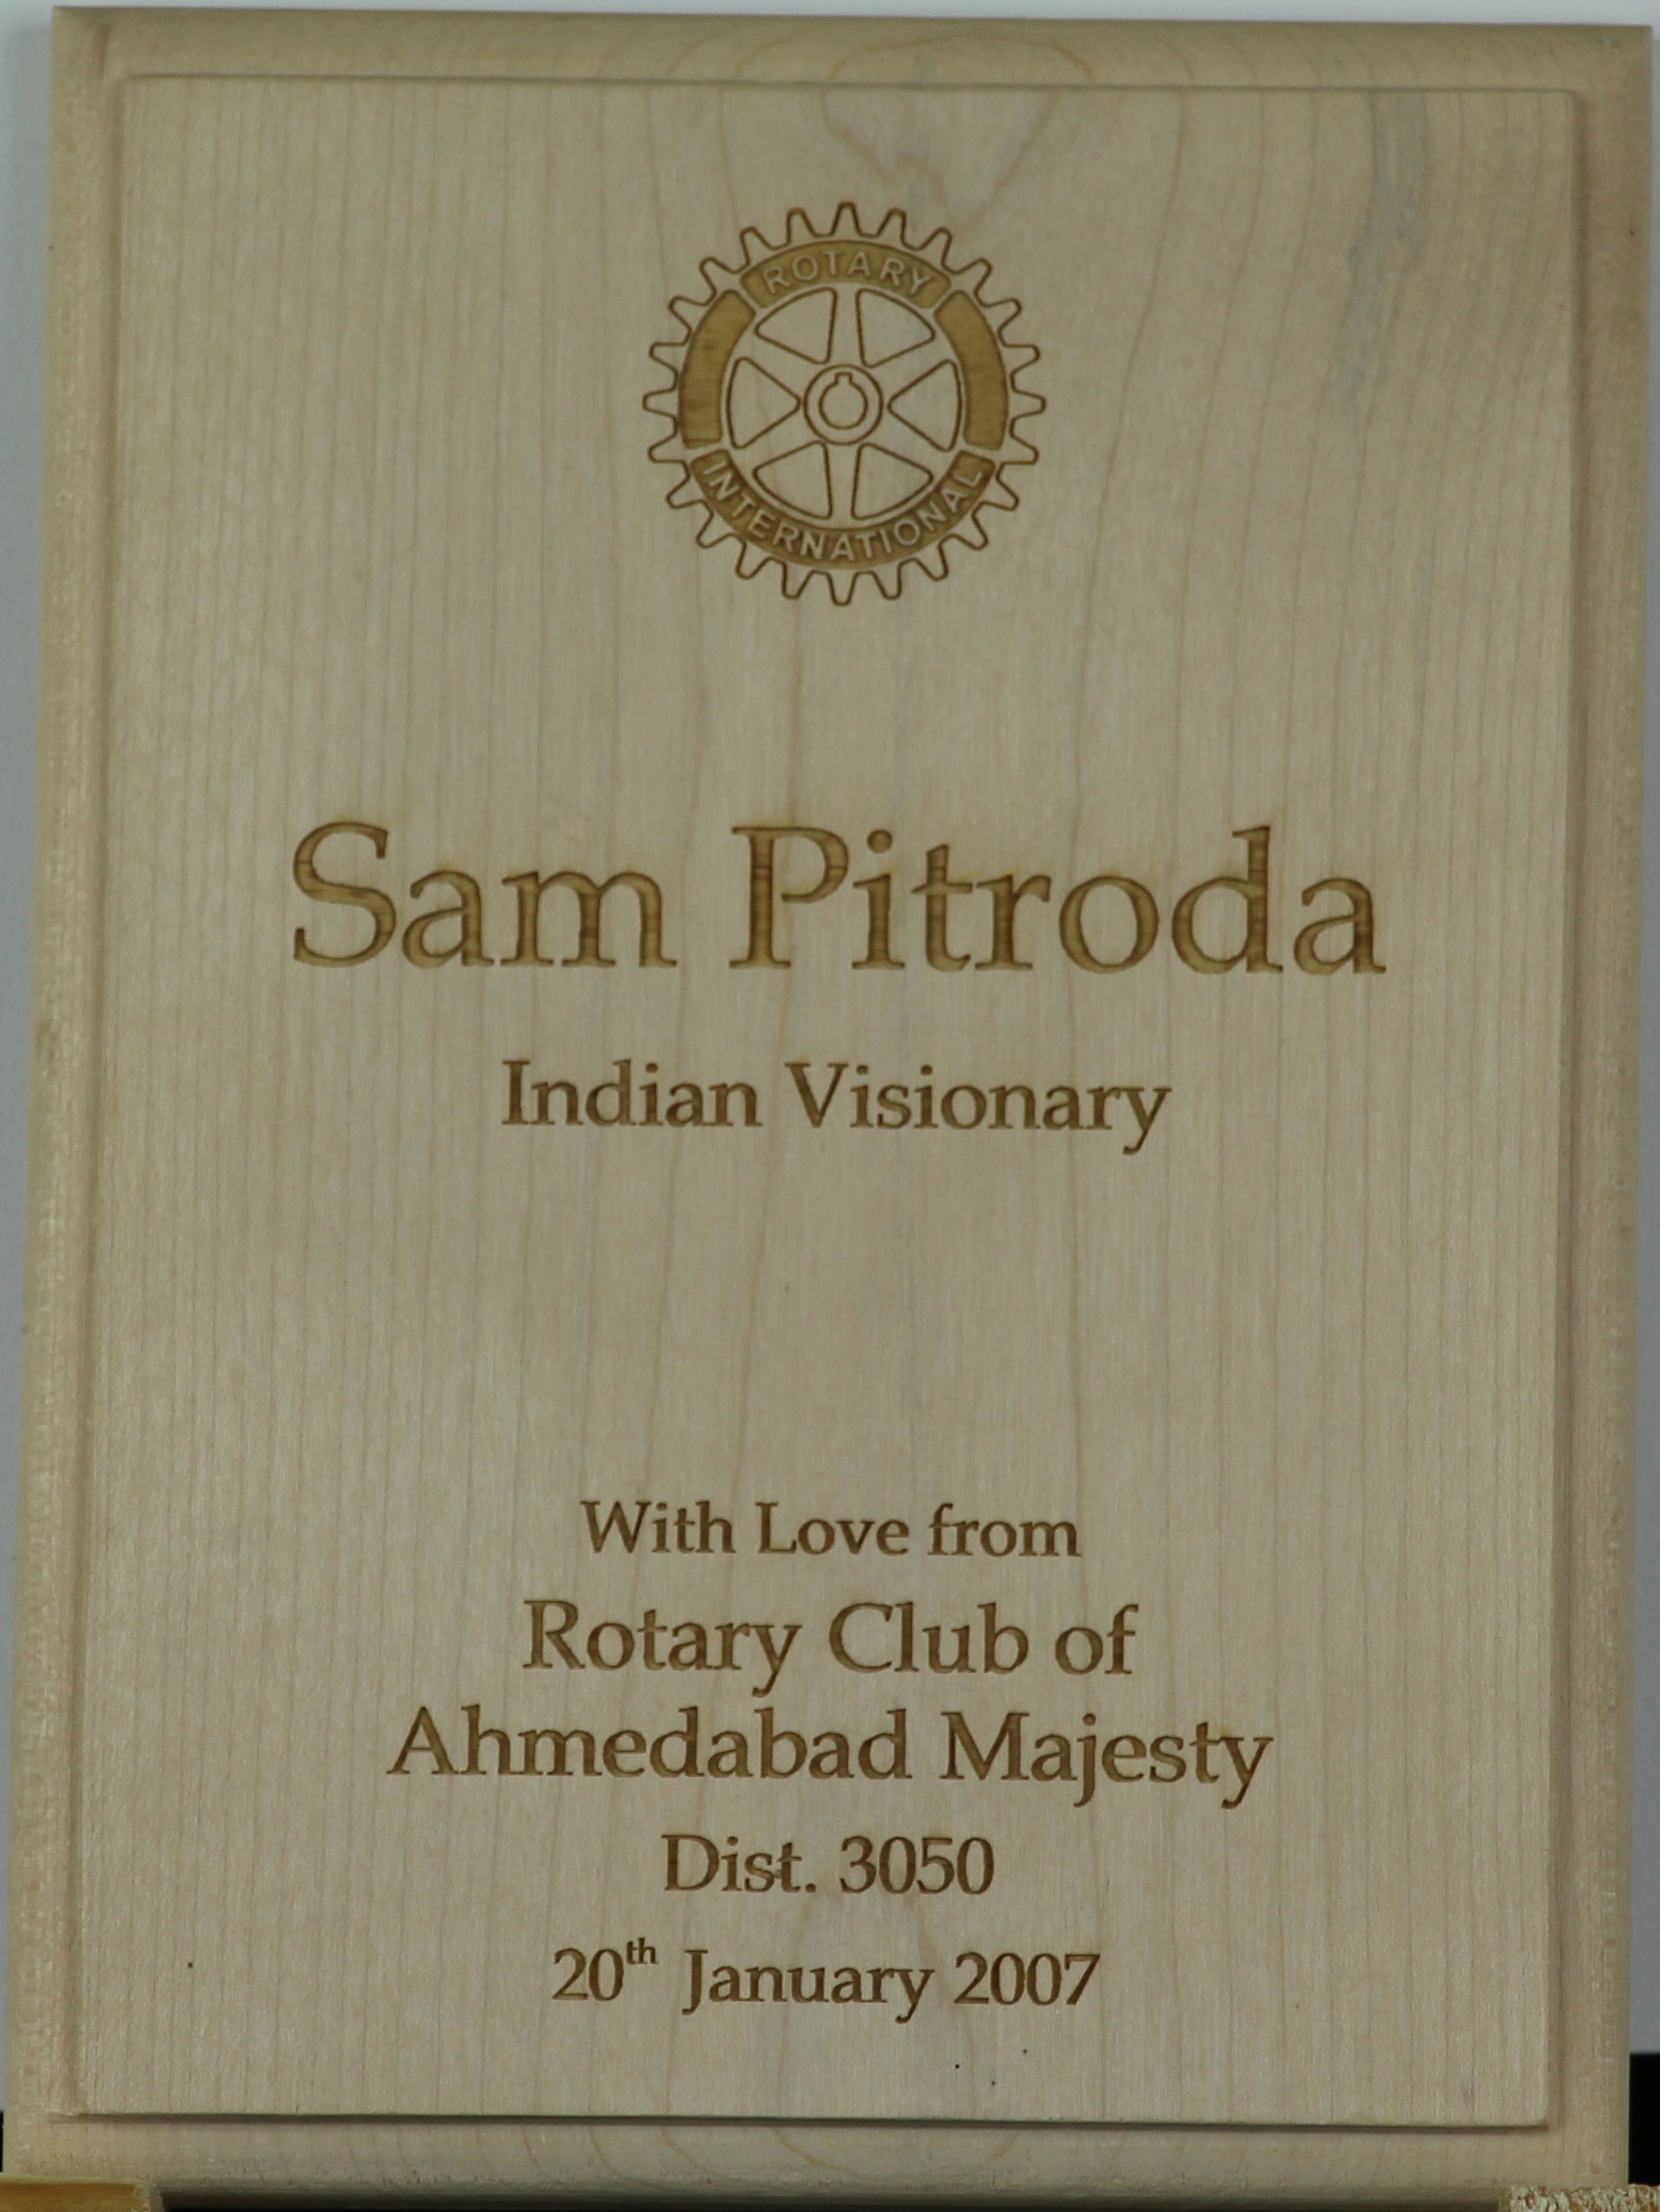 Indian Visionary Award, Rotary Club of Ahmedabad Majesty Dist. 3050, 2007